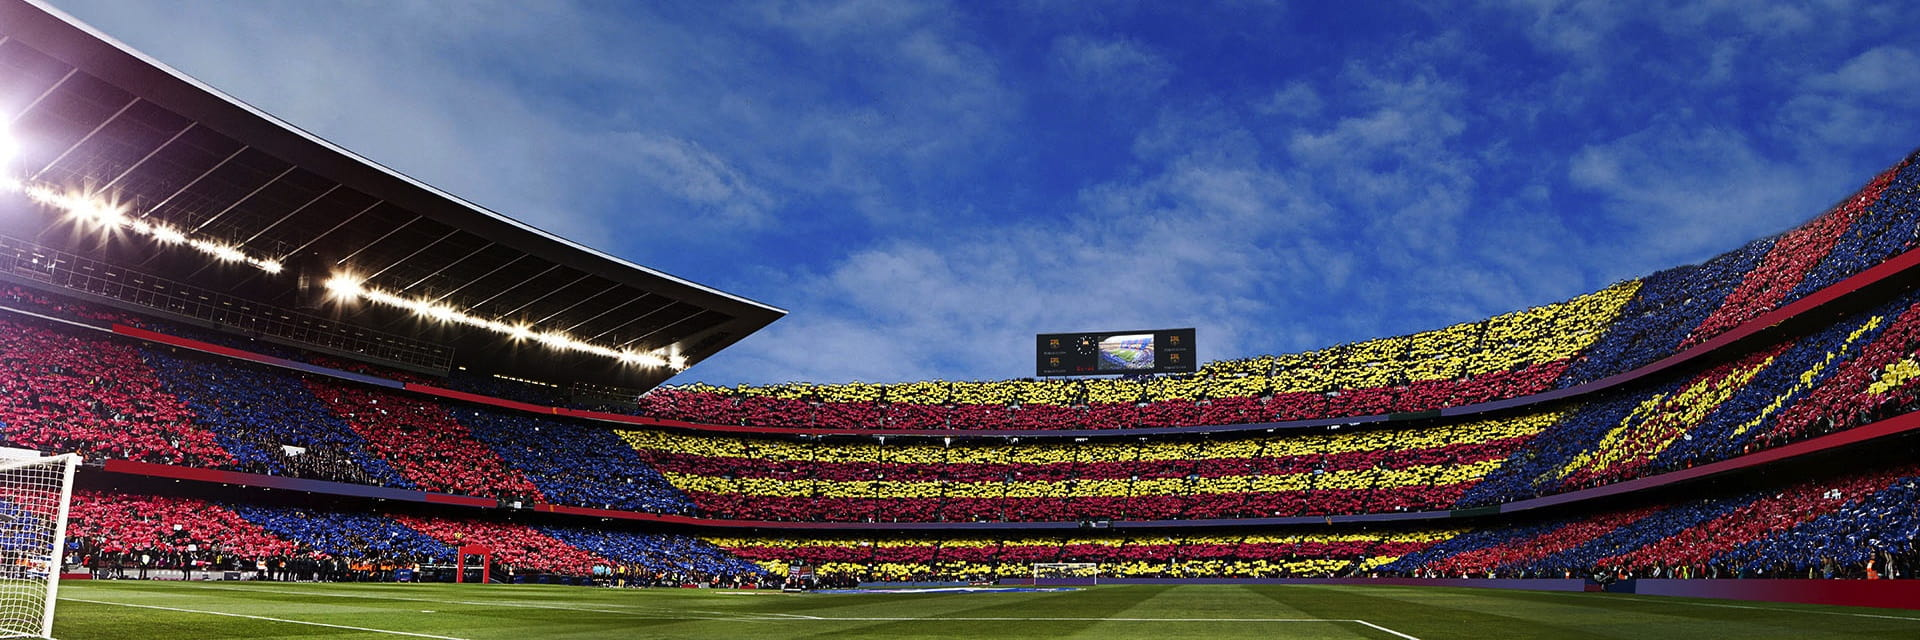 FC Barcelona - Real Valladolid, 2 Octoberat 21:15